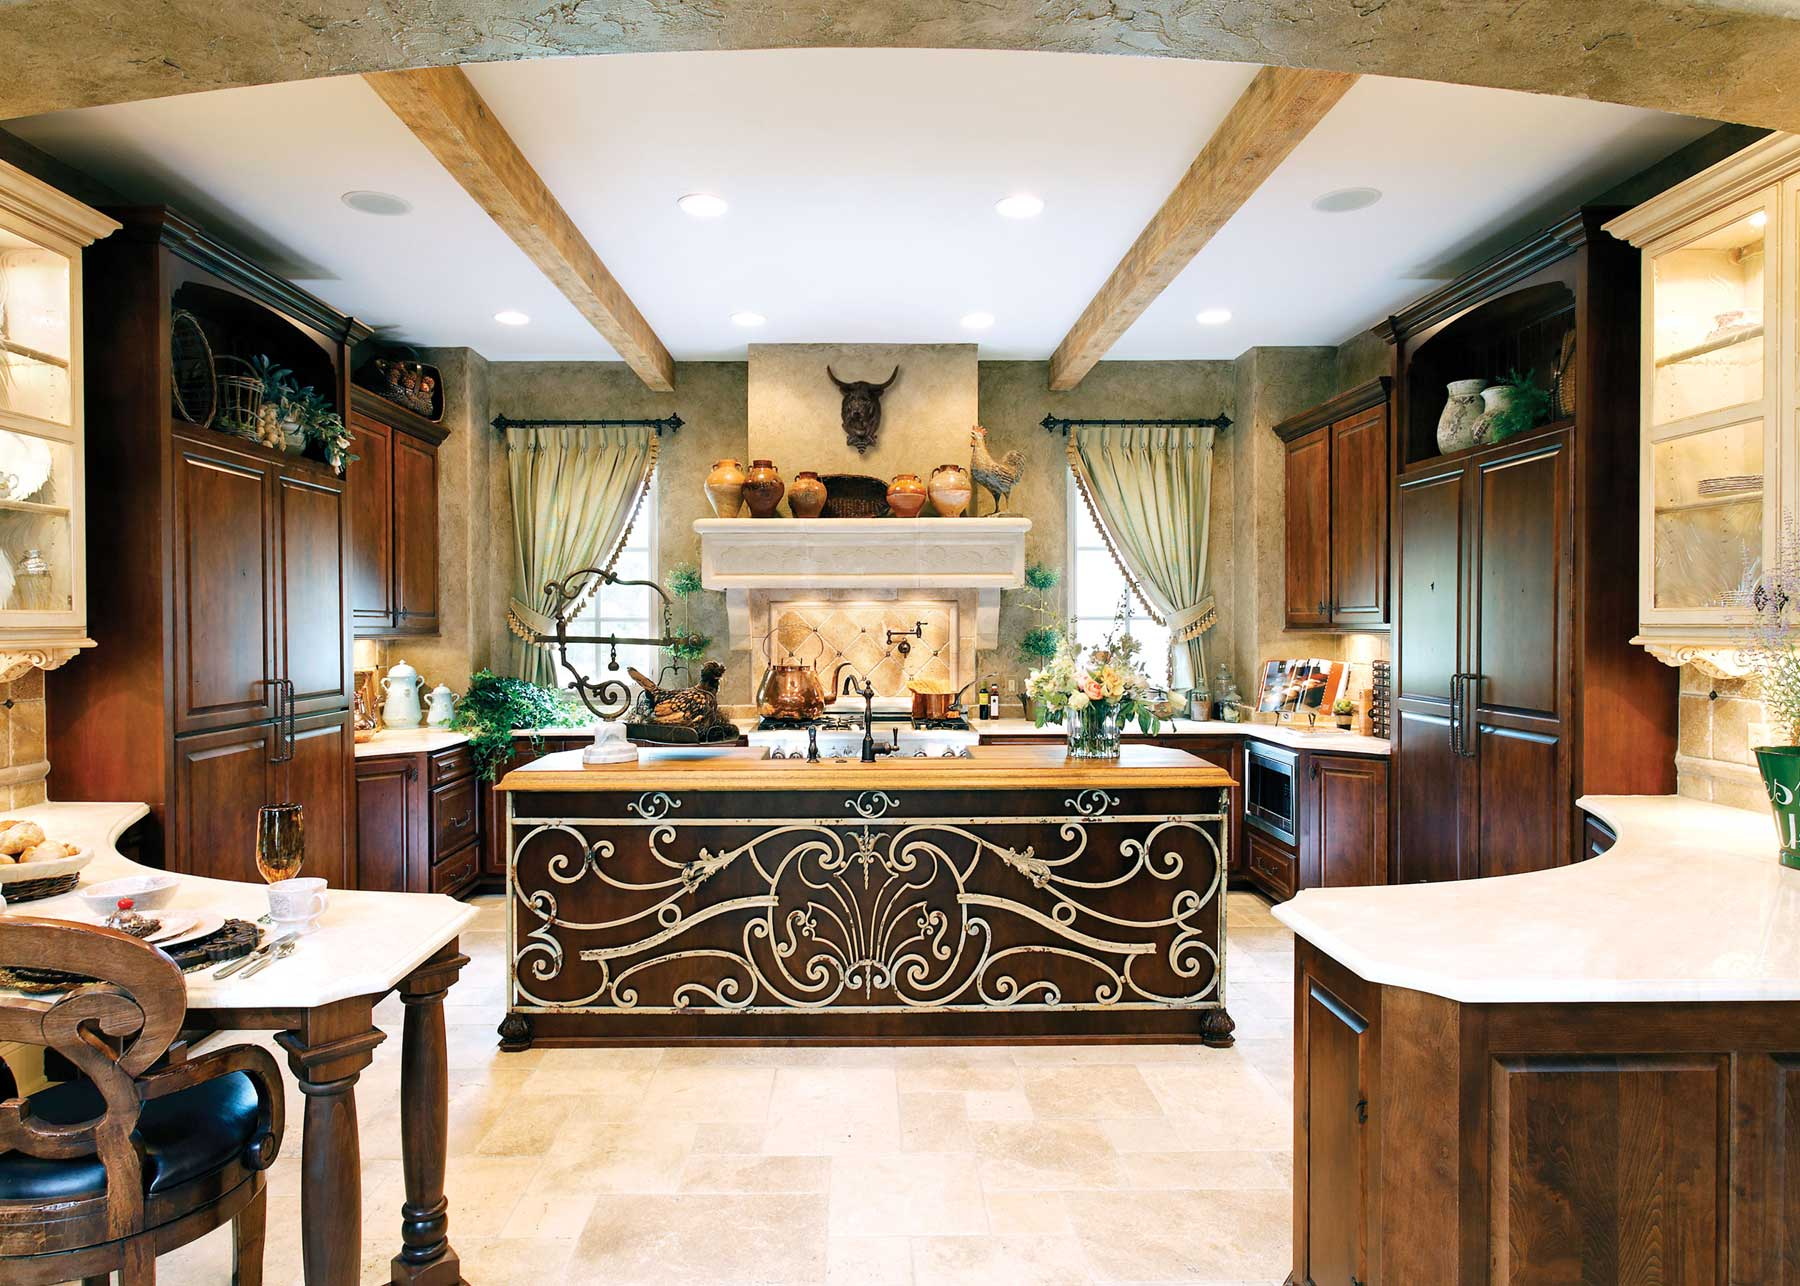 Chic painted and carved island of the ethnic styled kitchen